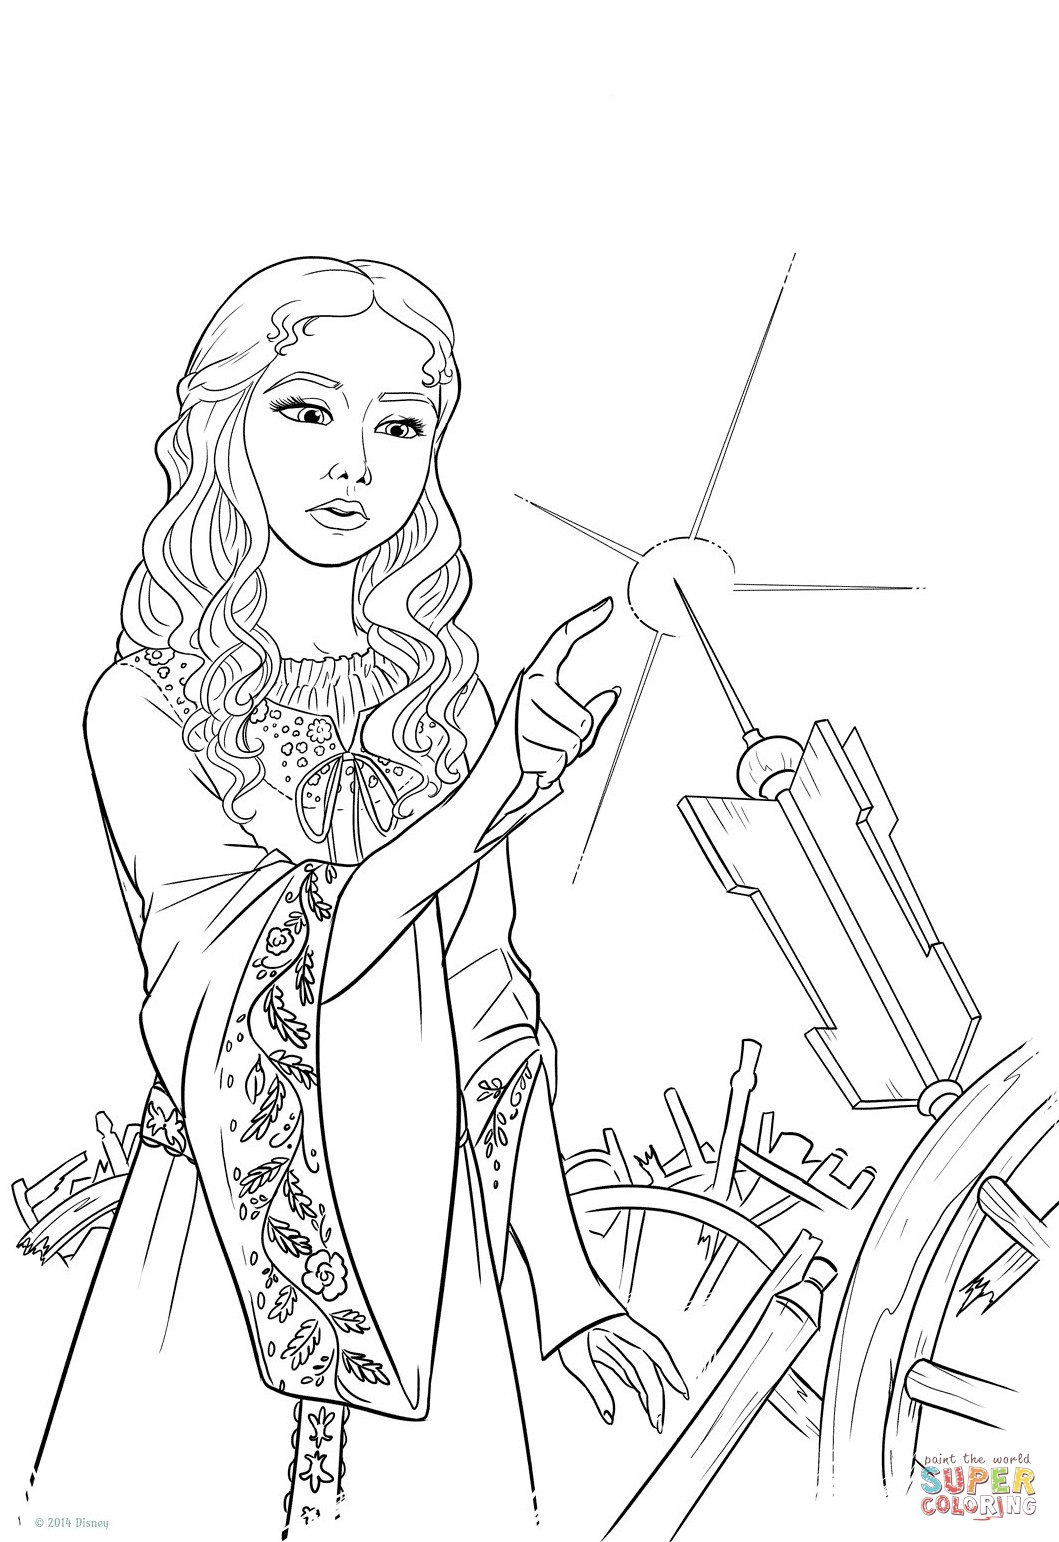 Princess Aurora Pricks Her Finger On The Spinning Wheel Coloring